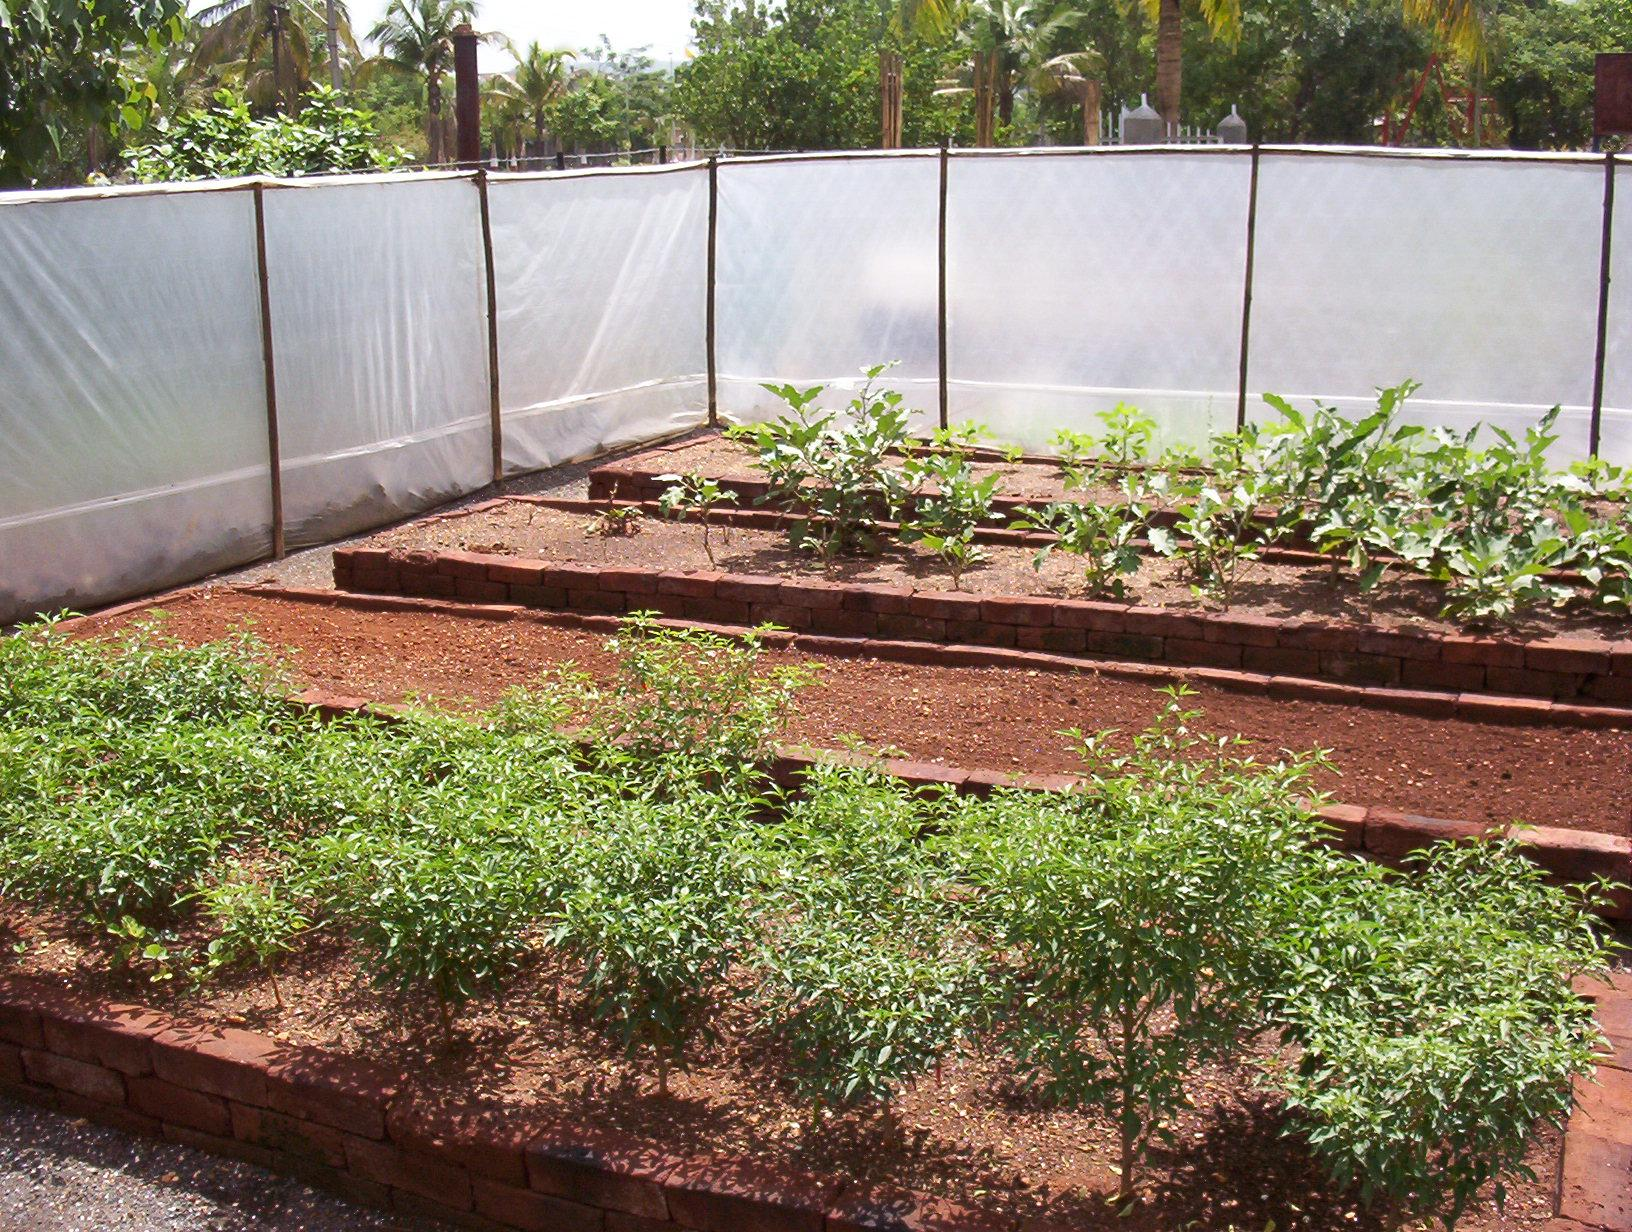 Farming on permanent raised beds